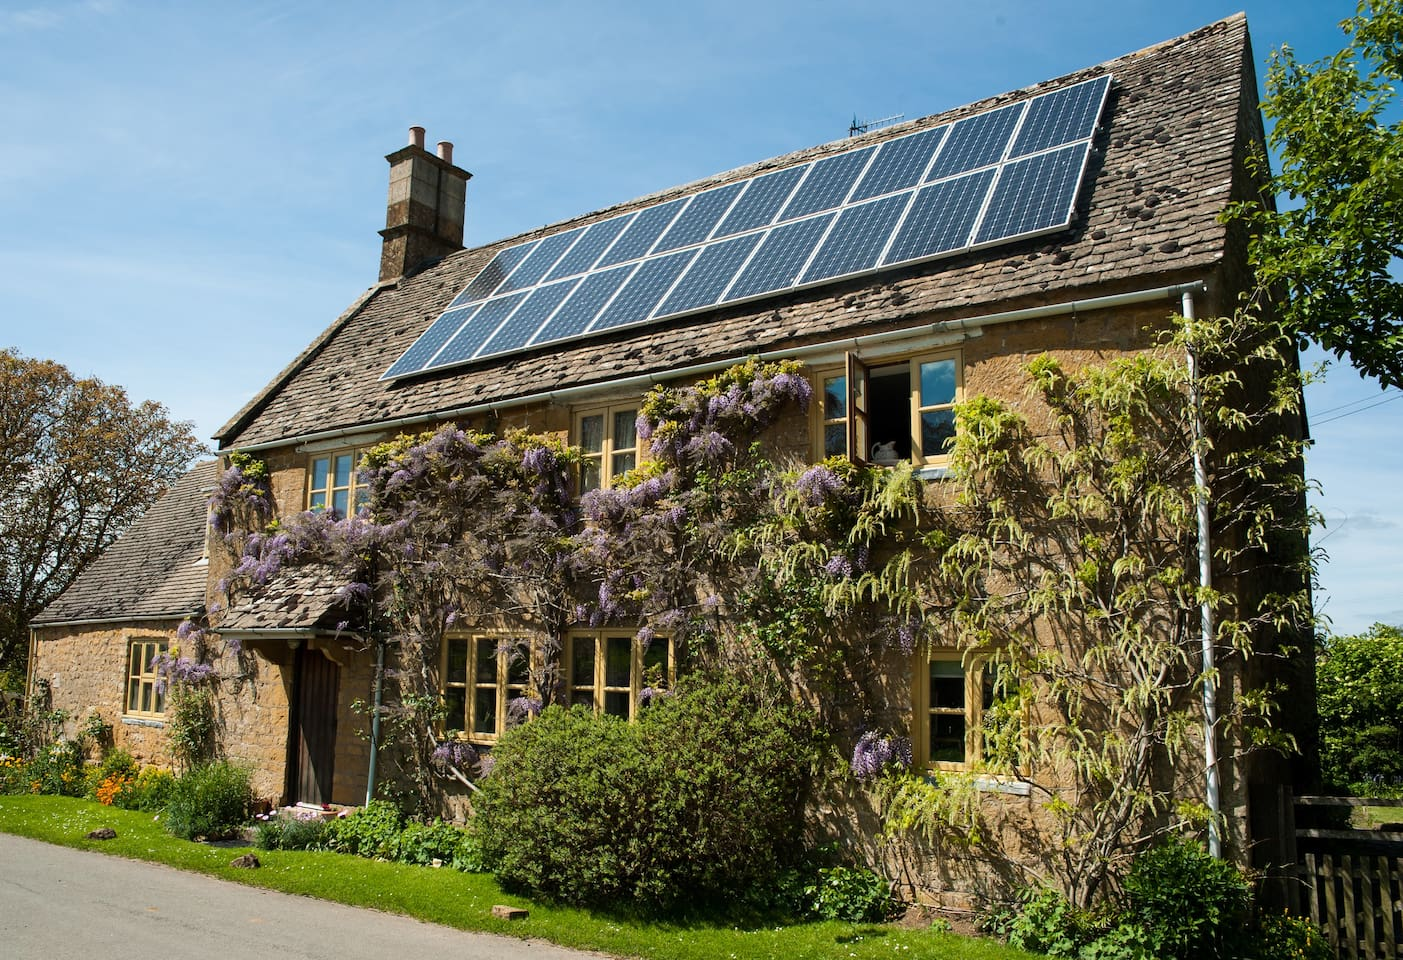 The Old House - in late May and with the scent of the wisteria it is really lovely!